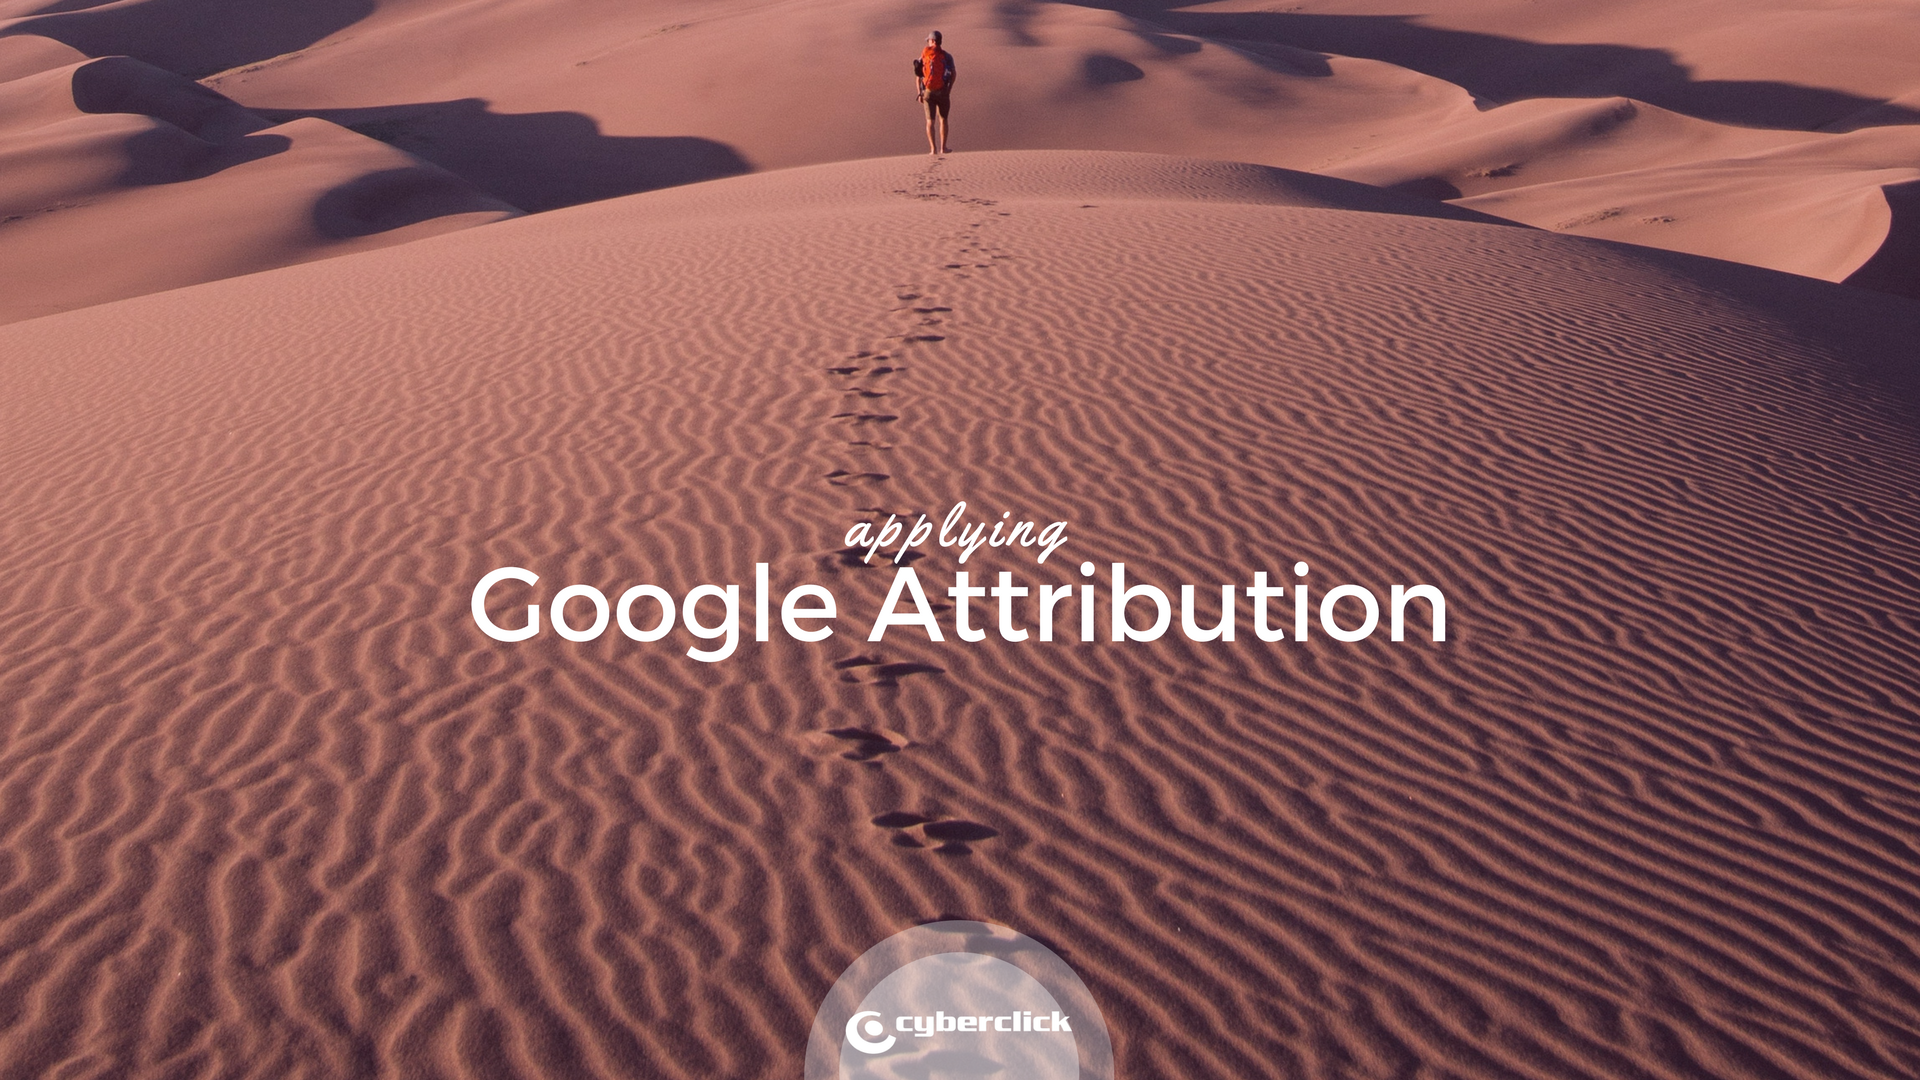 ¿Qué es Google Attribution?